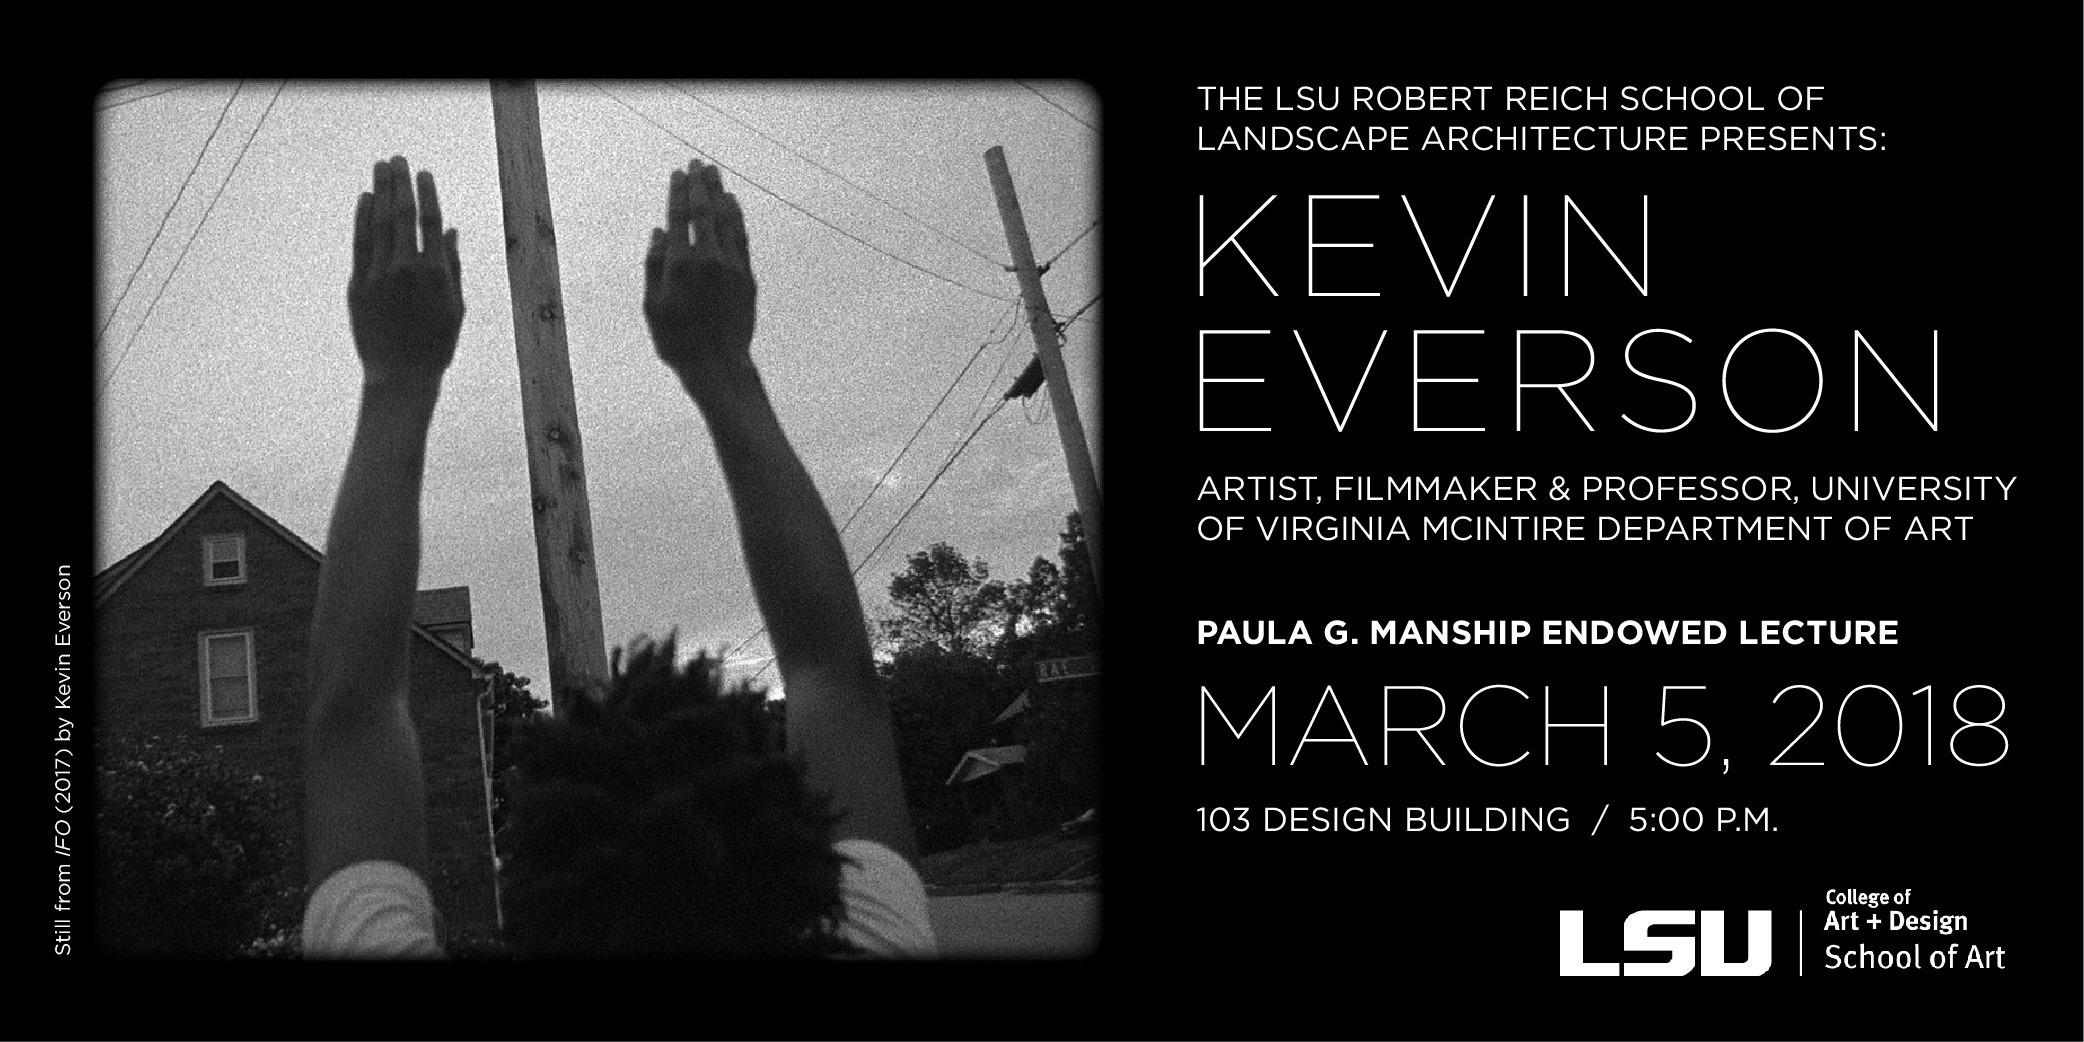 Kevin Everson Lecture March 5